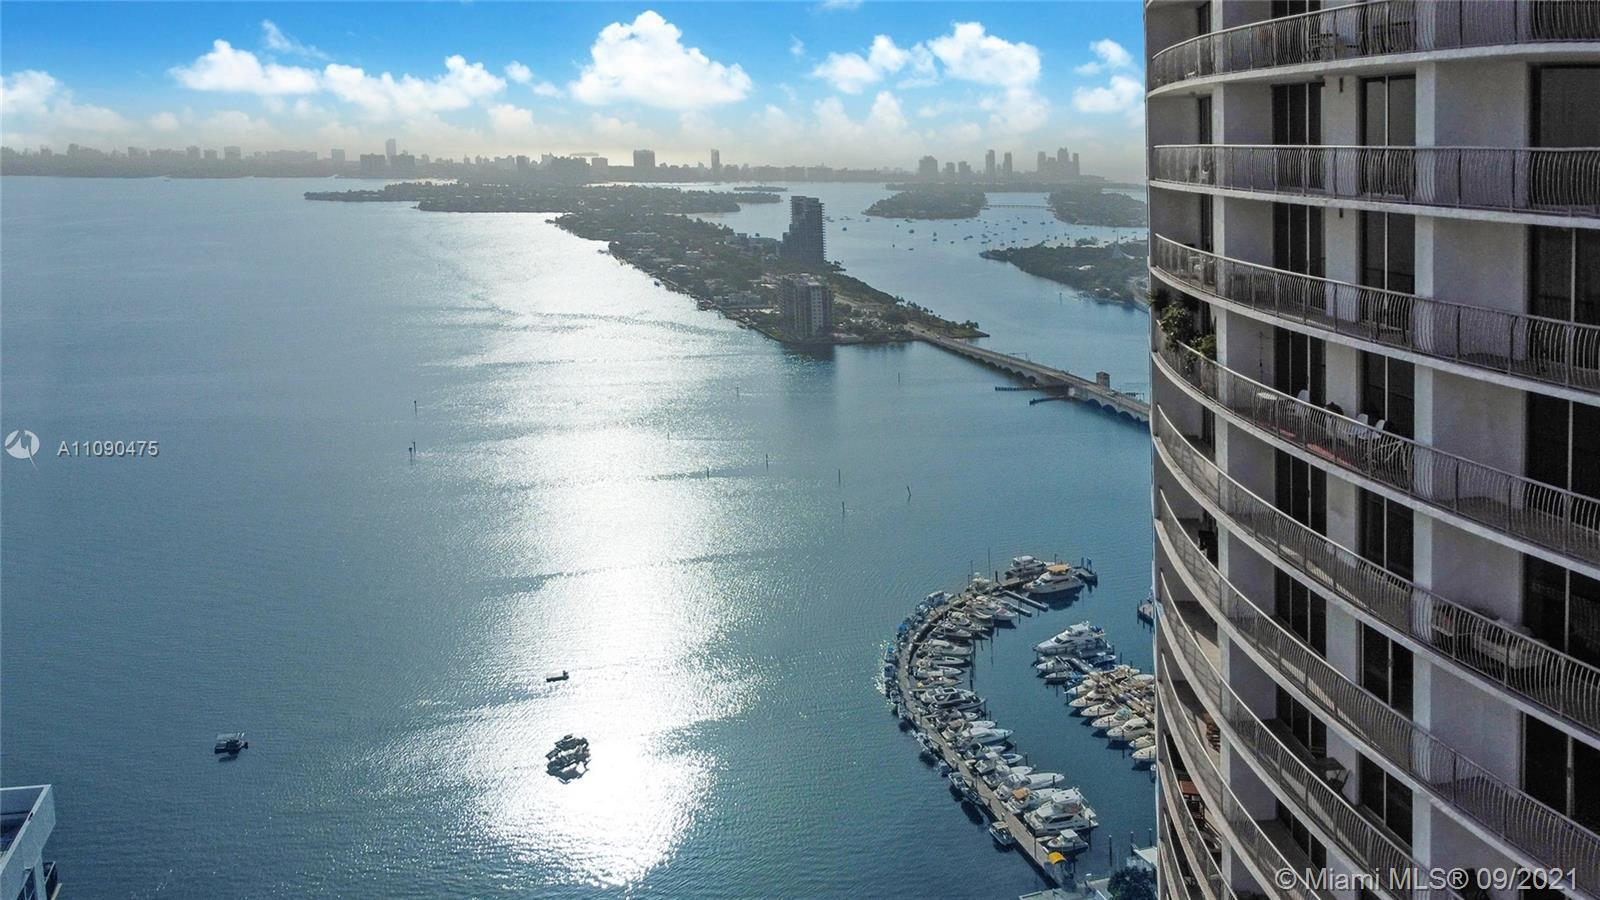 Amazing city & bay views from the 45th floor. Spacious 821 sq. ft. unit w/ 1 bed 1 bath, laminated w